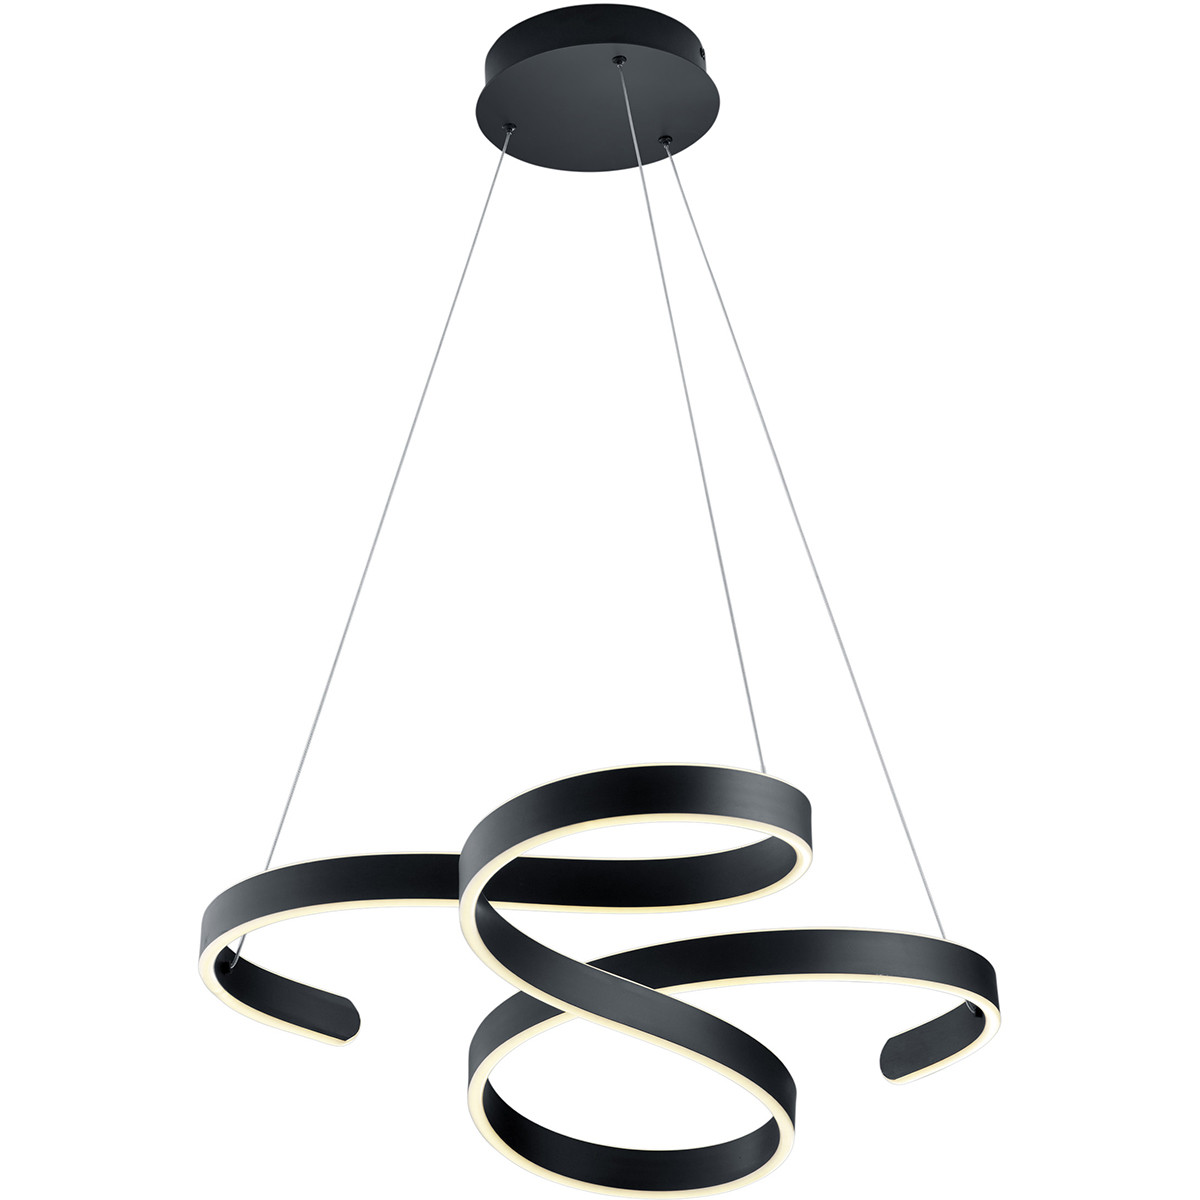 LED Hanglamp - Hangverlichting - Trion Frinco - 52W - Warm Wit 3000K - Dimbaar - Rond - Mat Zwart -